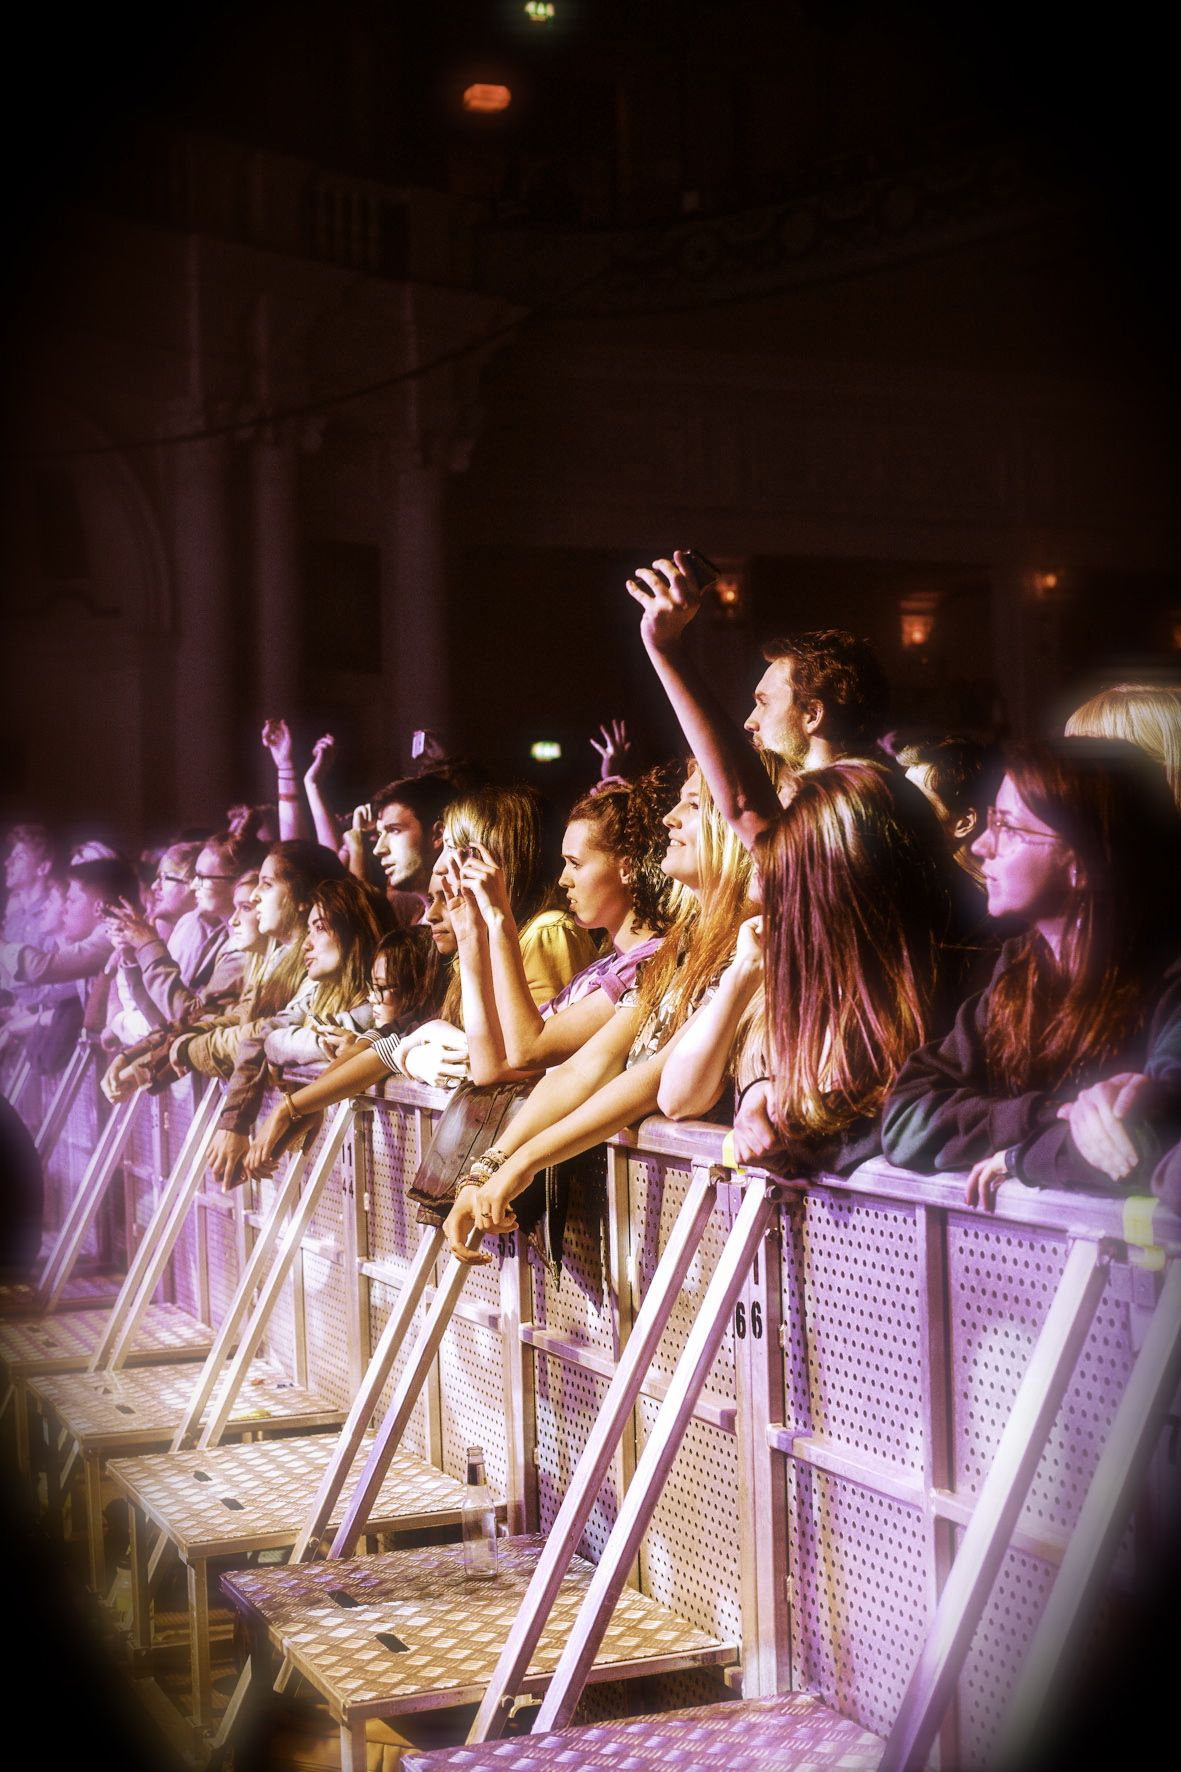 Tickets to the new front row? #soundhalo #unleashinglive